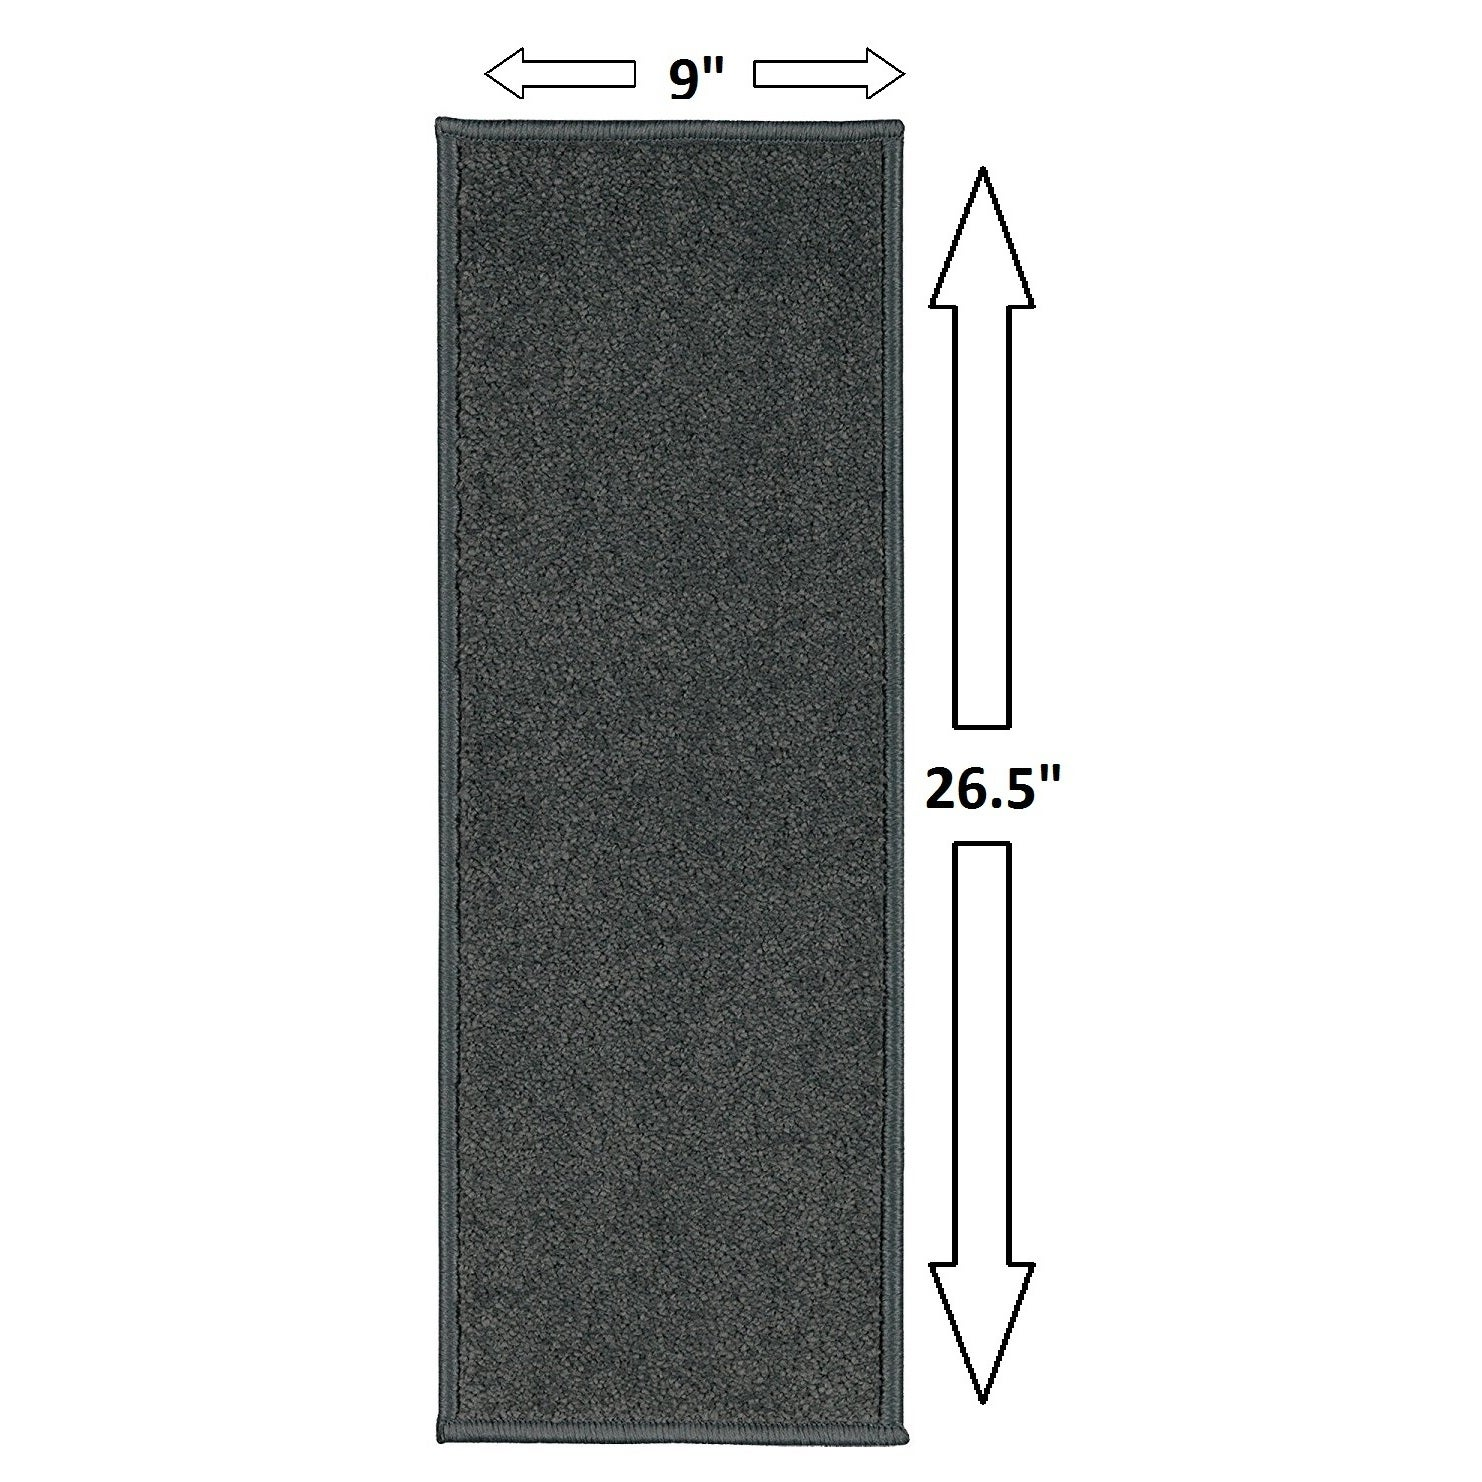 Attractive Casatreads Nonslip Rubber Backed Stair Tread 8 034